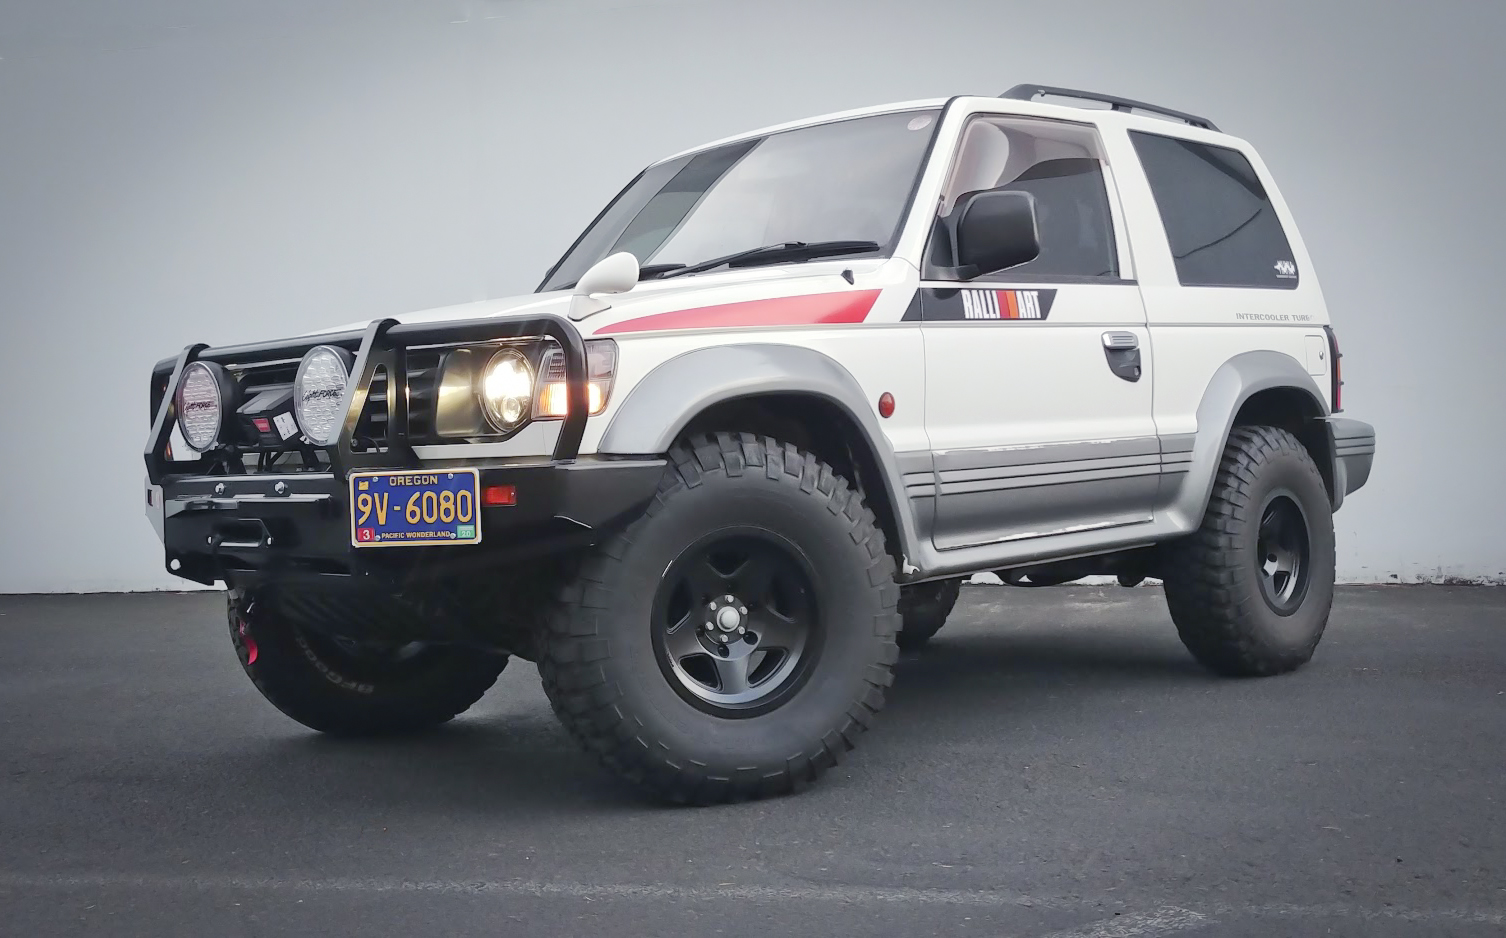 The Ralllitractor - 1992 Mitsubishi Pajero